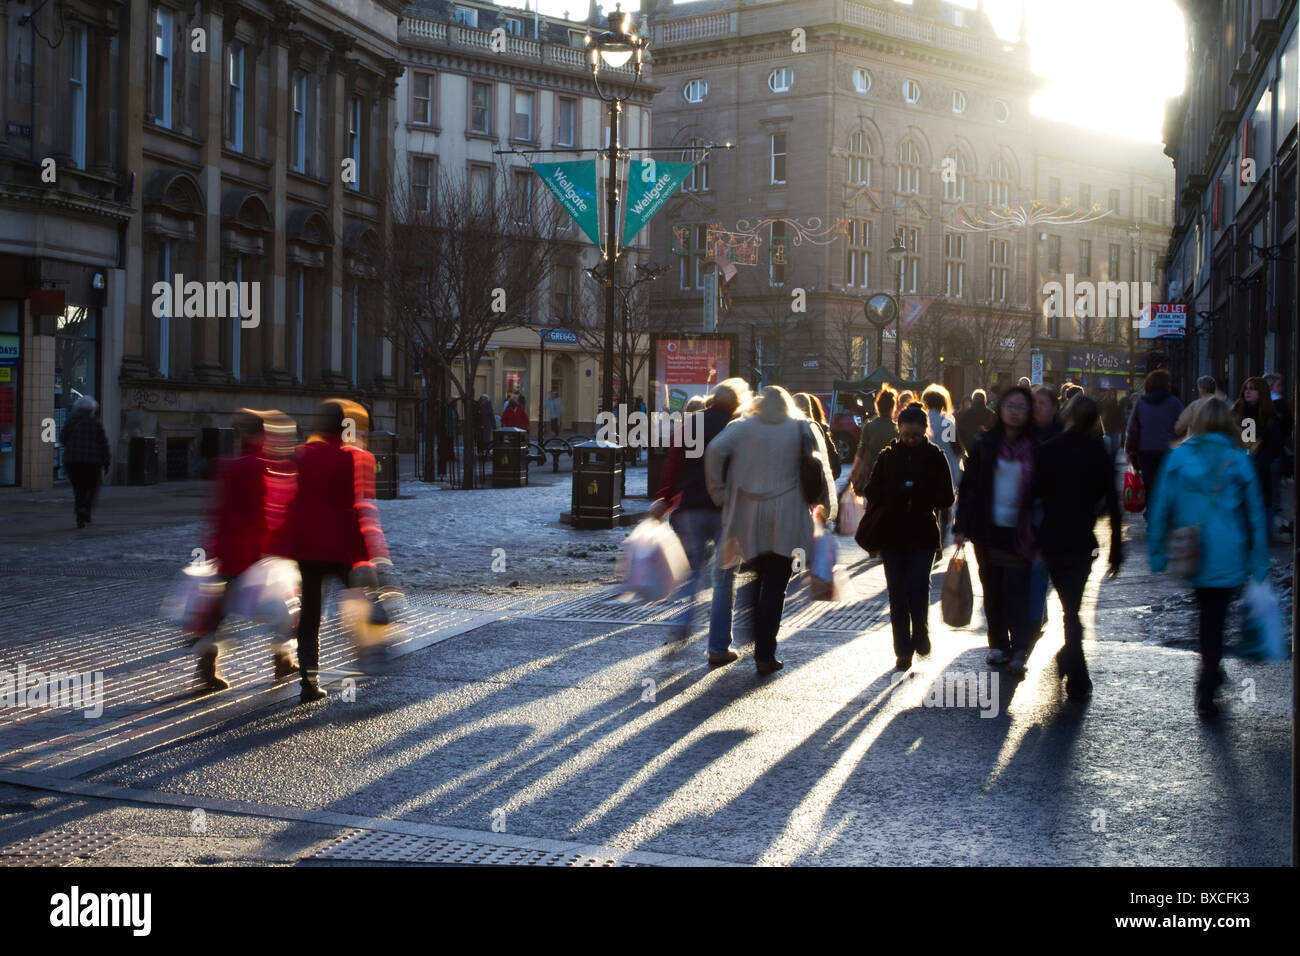 Urban Christmas Shoppers silhouetted in the busy Streets of Dundee, city centre, Tayside, Scotland, UK. People silhouettes - Stock Image